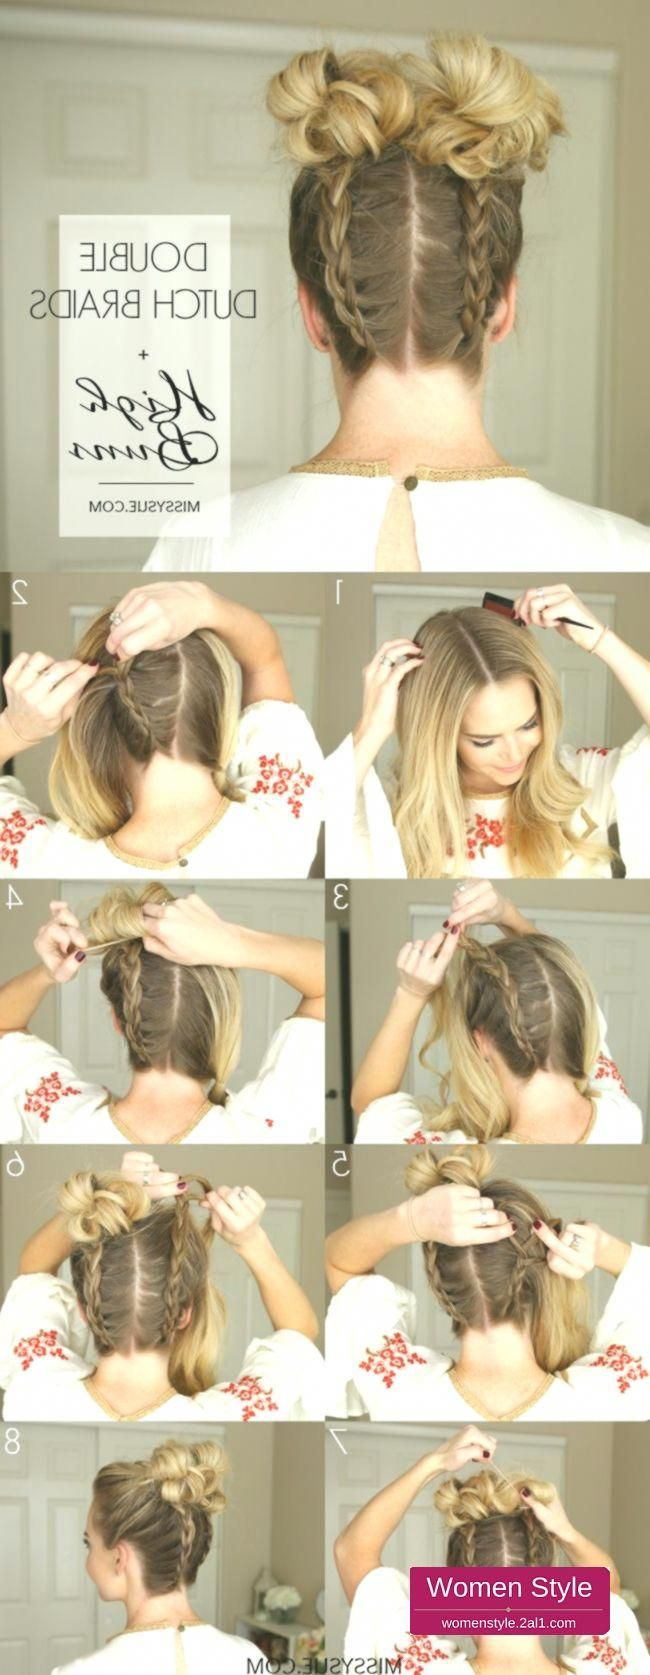 Click the link to learn more best braids hairstyle…